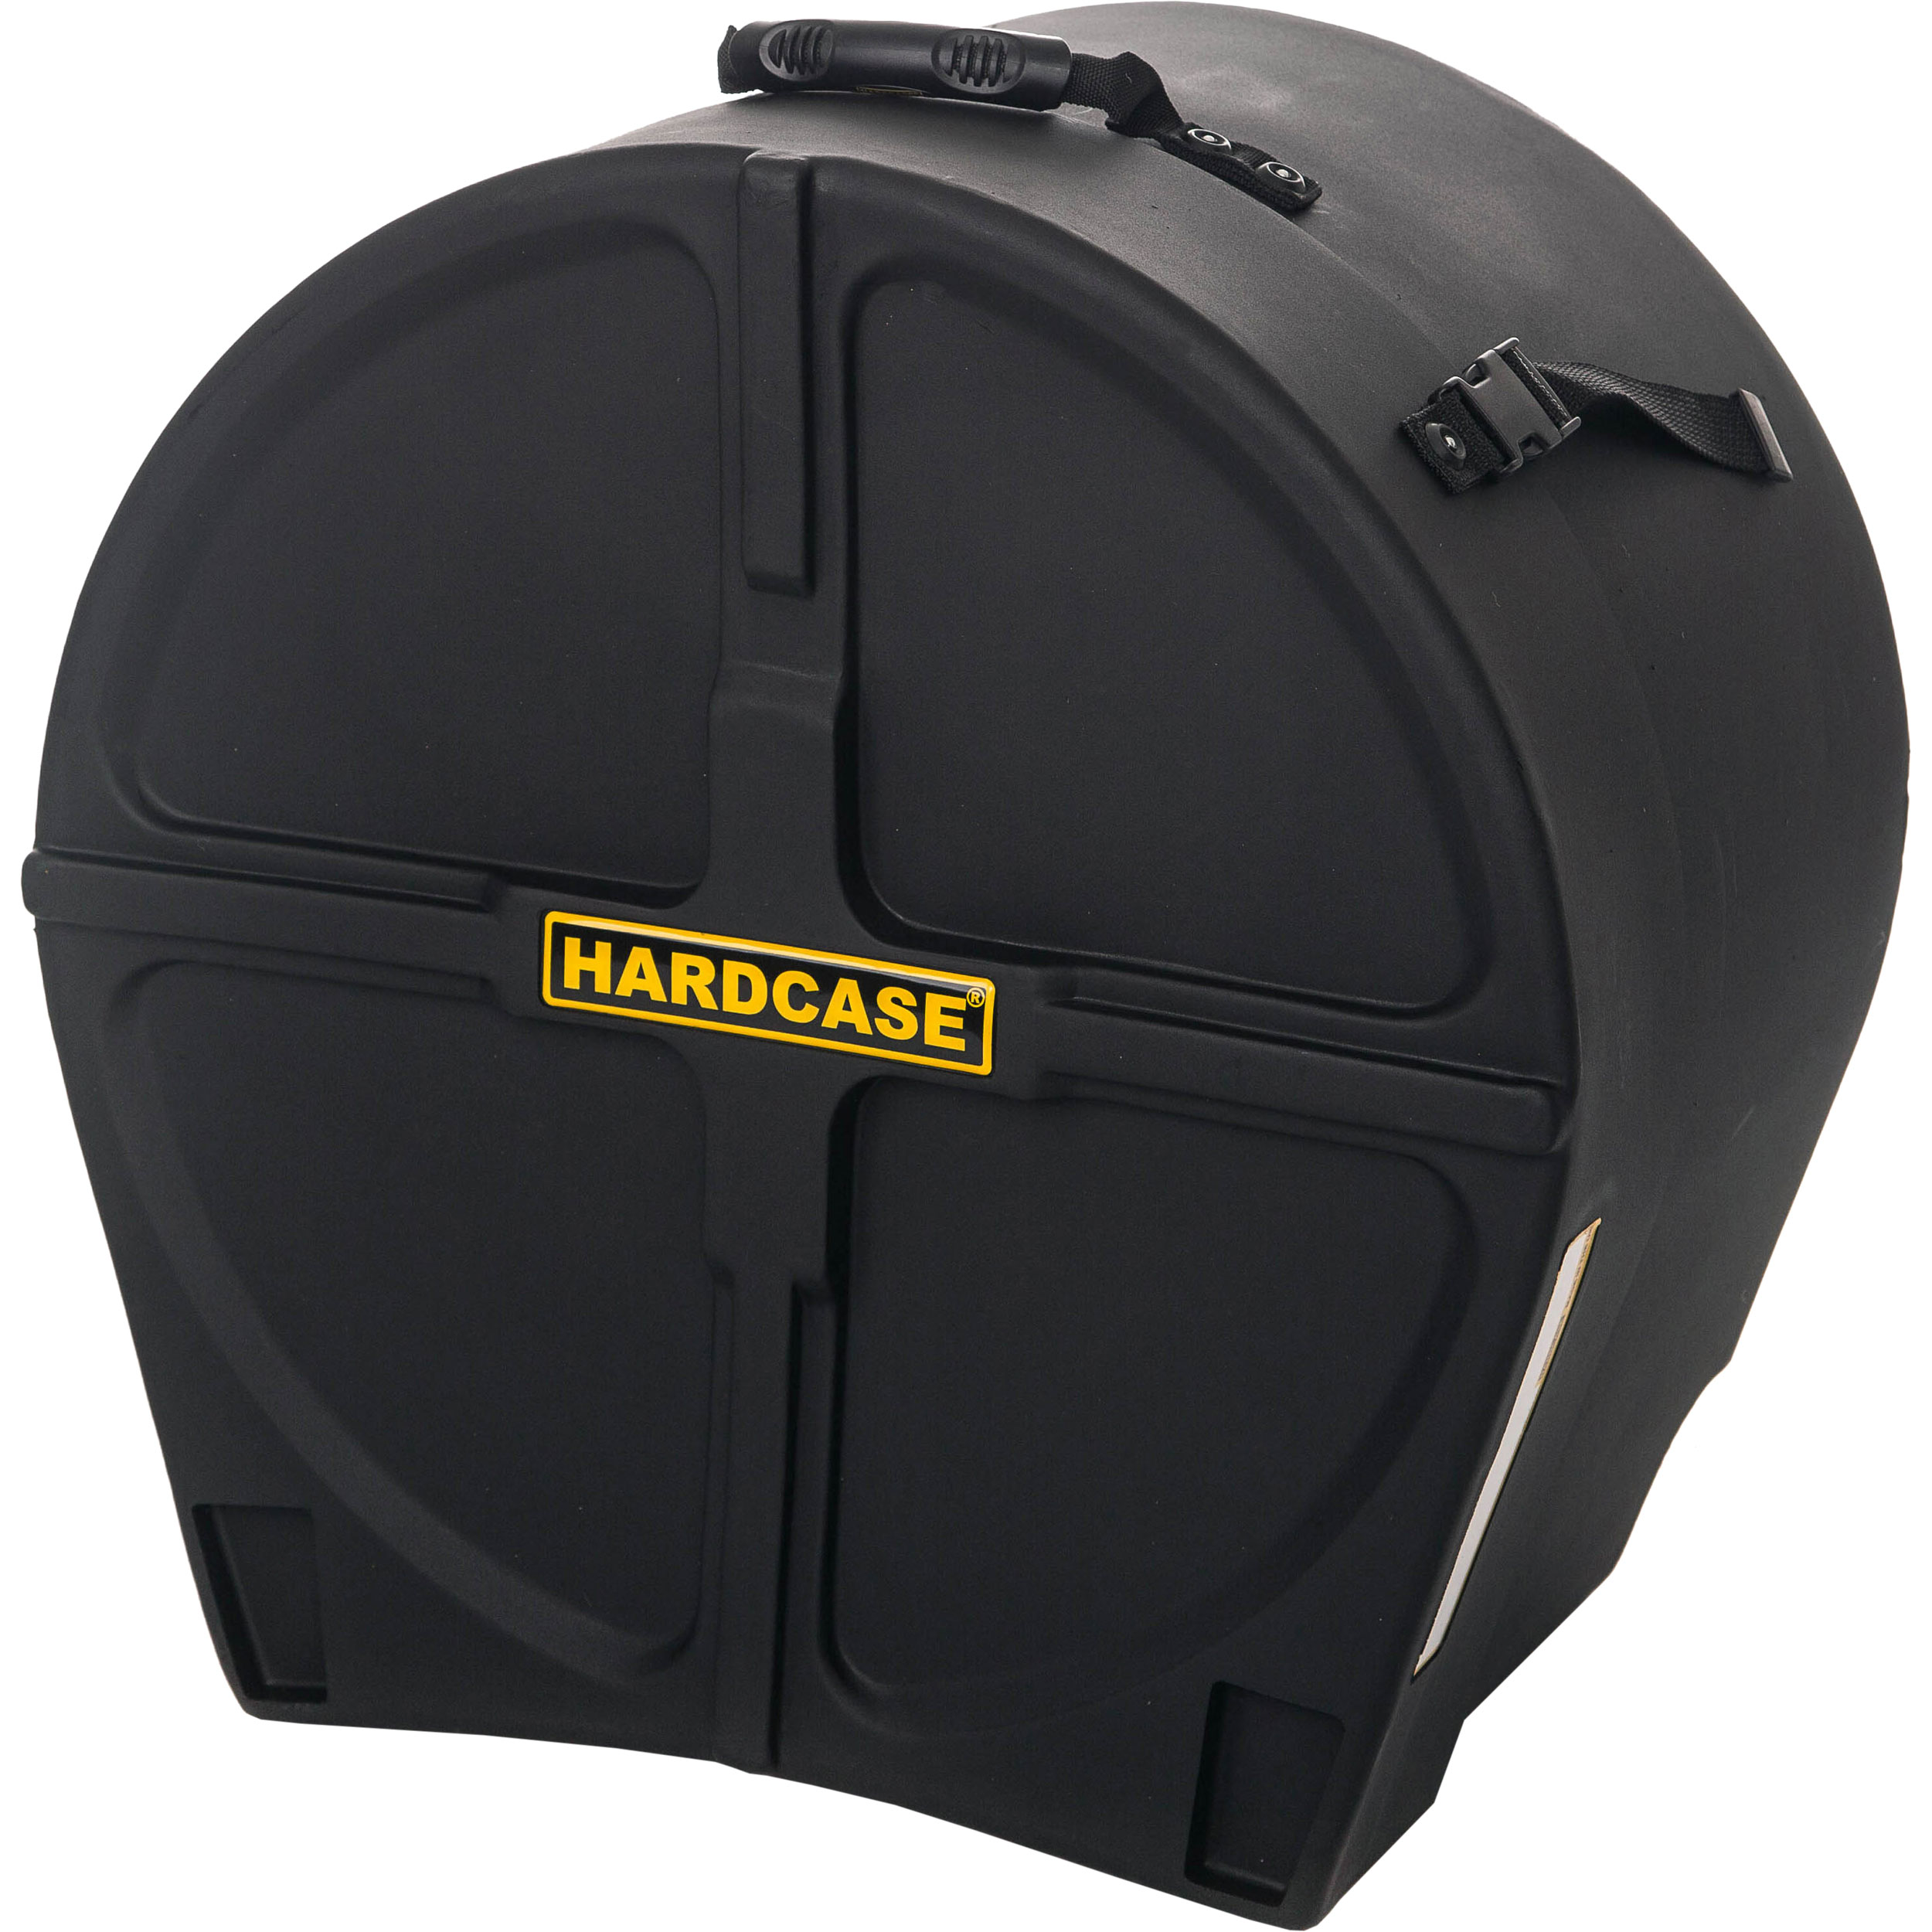 "Hardcase 18"" (Diameter) x 14-to-17"" (Deep) Floor Tom Case"